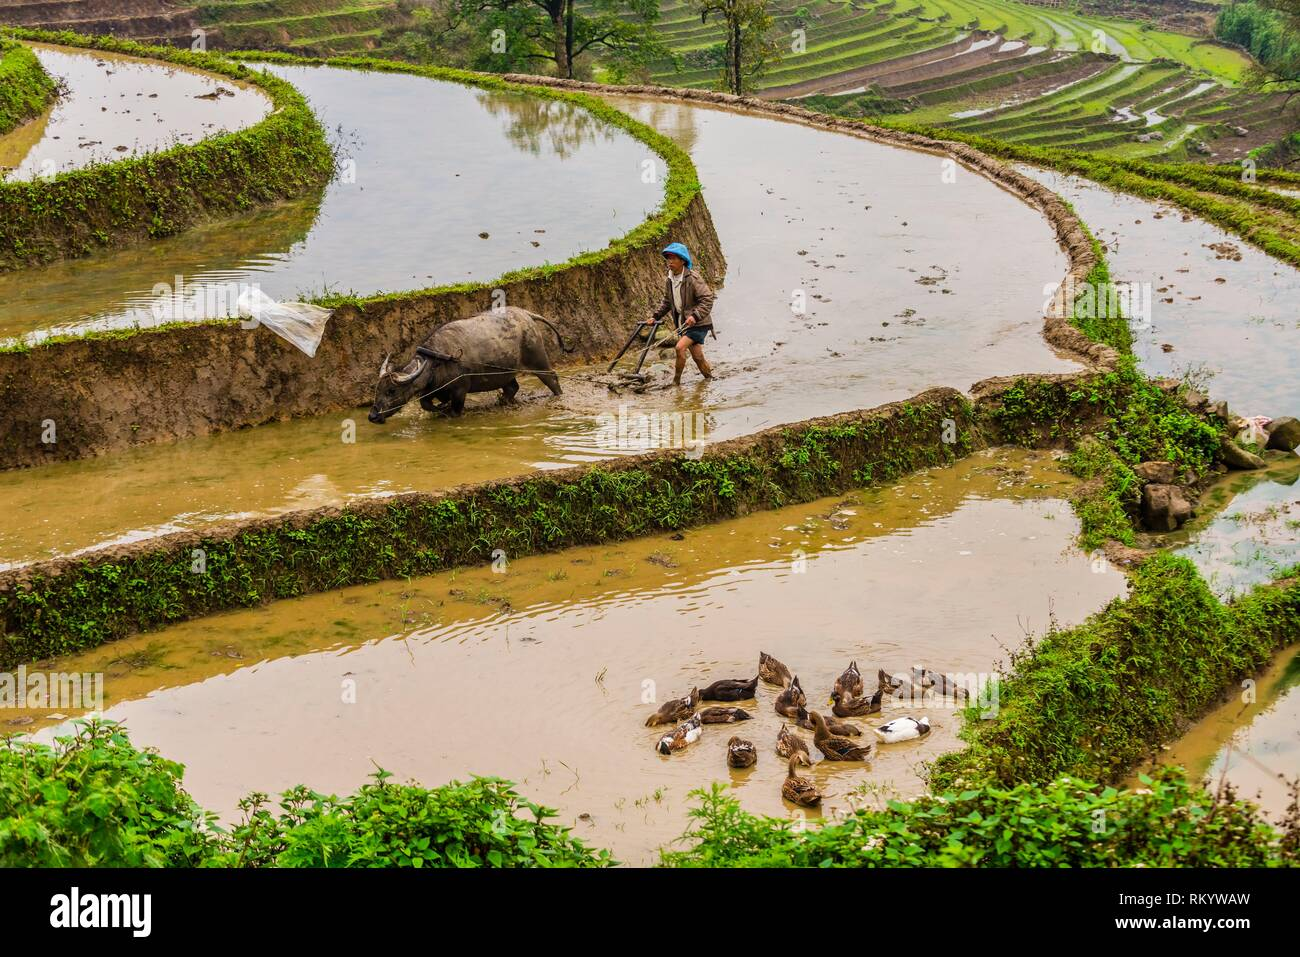 Farmer and water buffalo working in the rice terraces of the Muong Hoa Valley near Sapa. northern Vietnam. - Stock Image